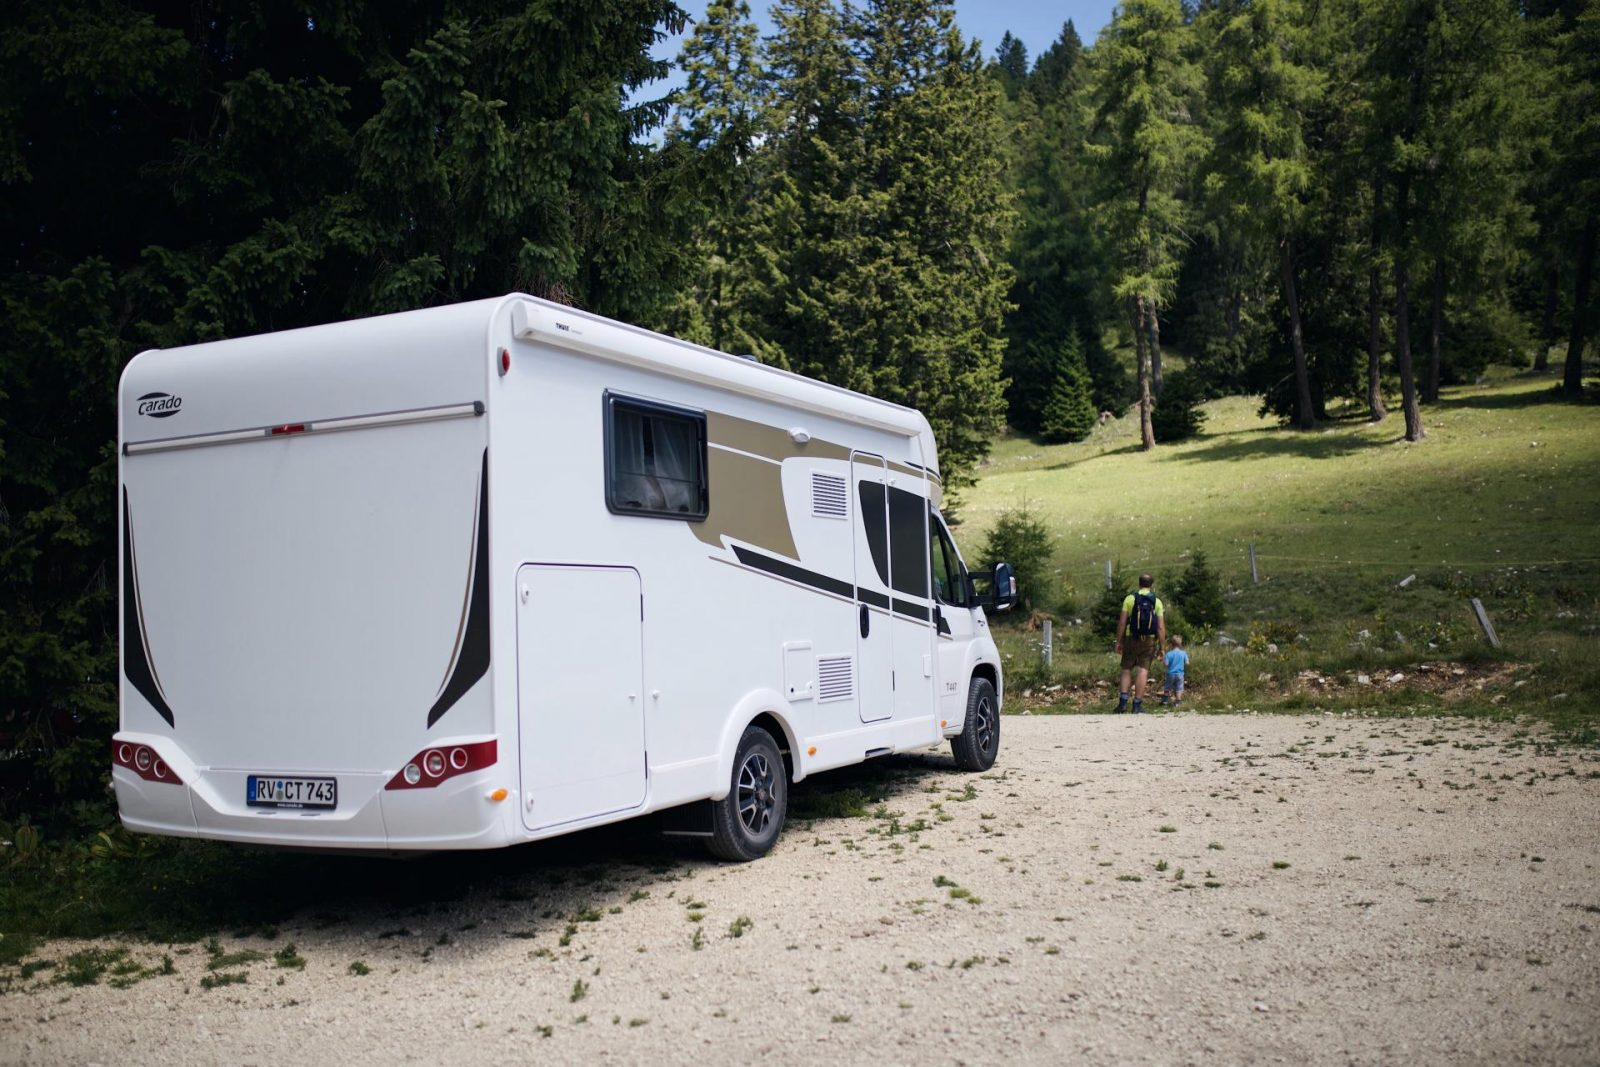 Caravan Roadtrip Pinspiration_Woche1_B5CD7929-7846-4385-82CC-59B32B3460BA